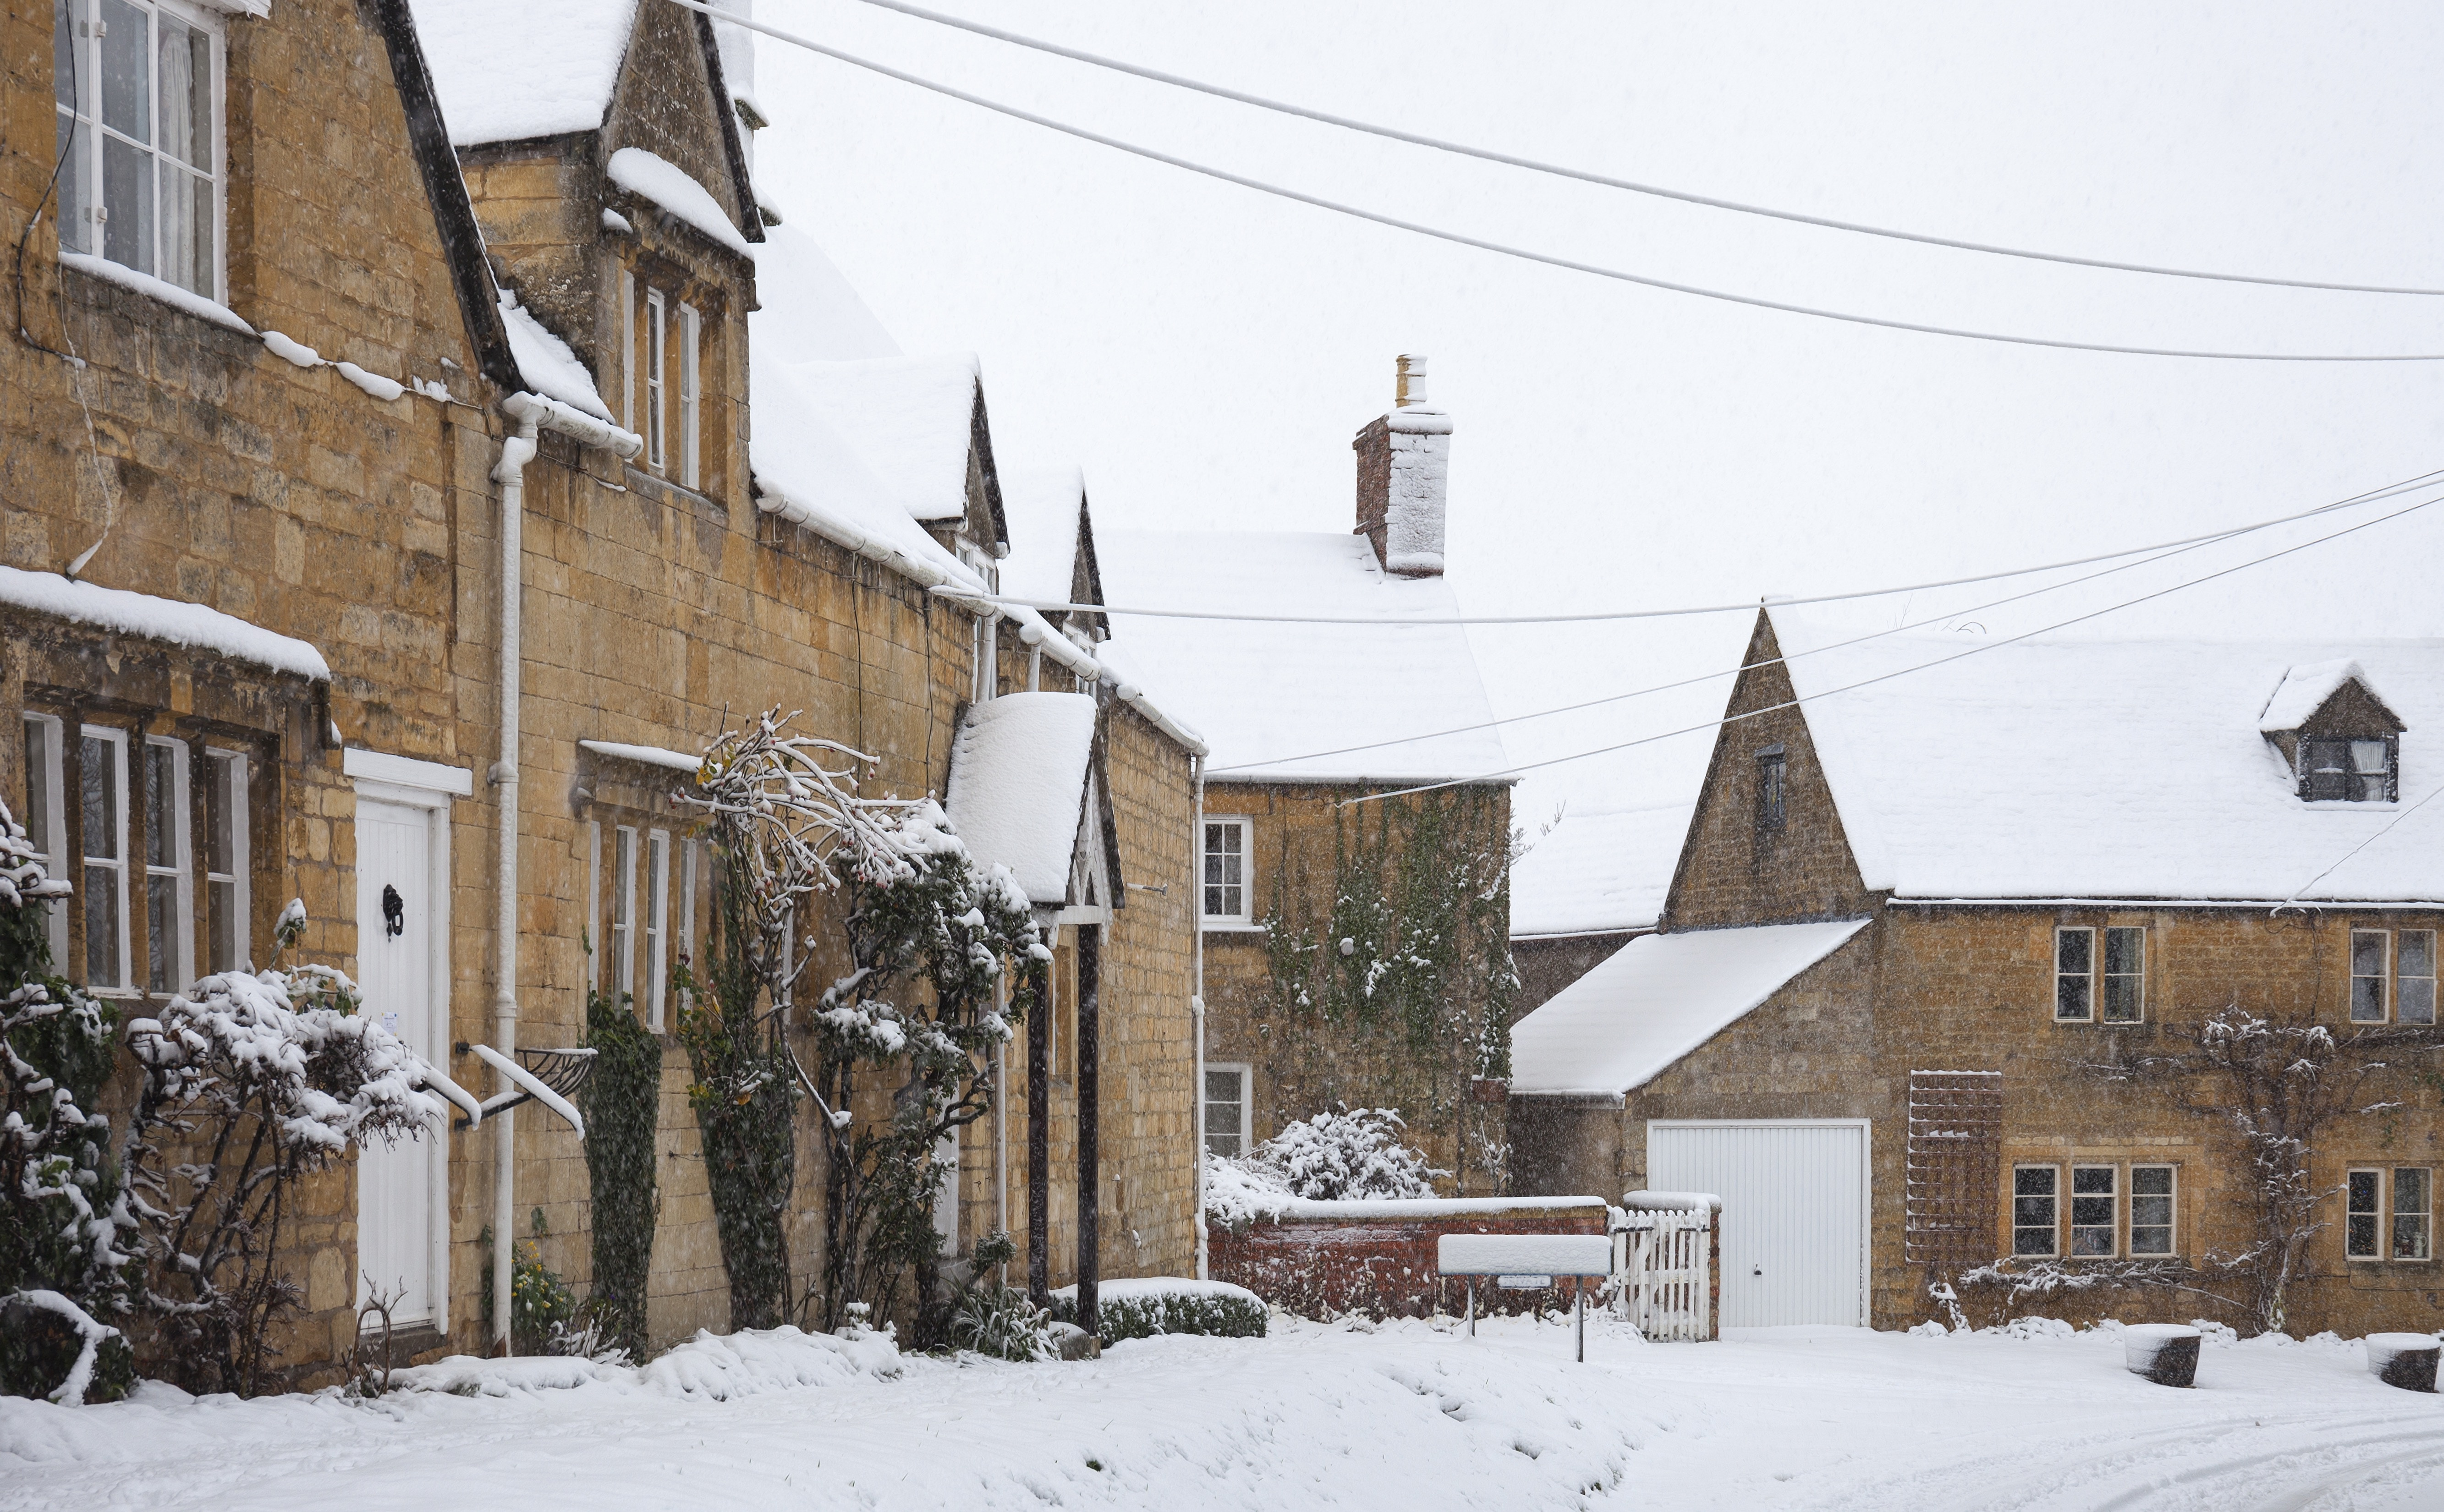 Cotswold House in Snow, Mickleton, Chipping Campden